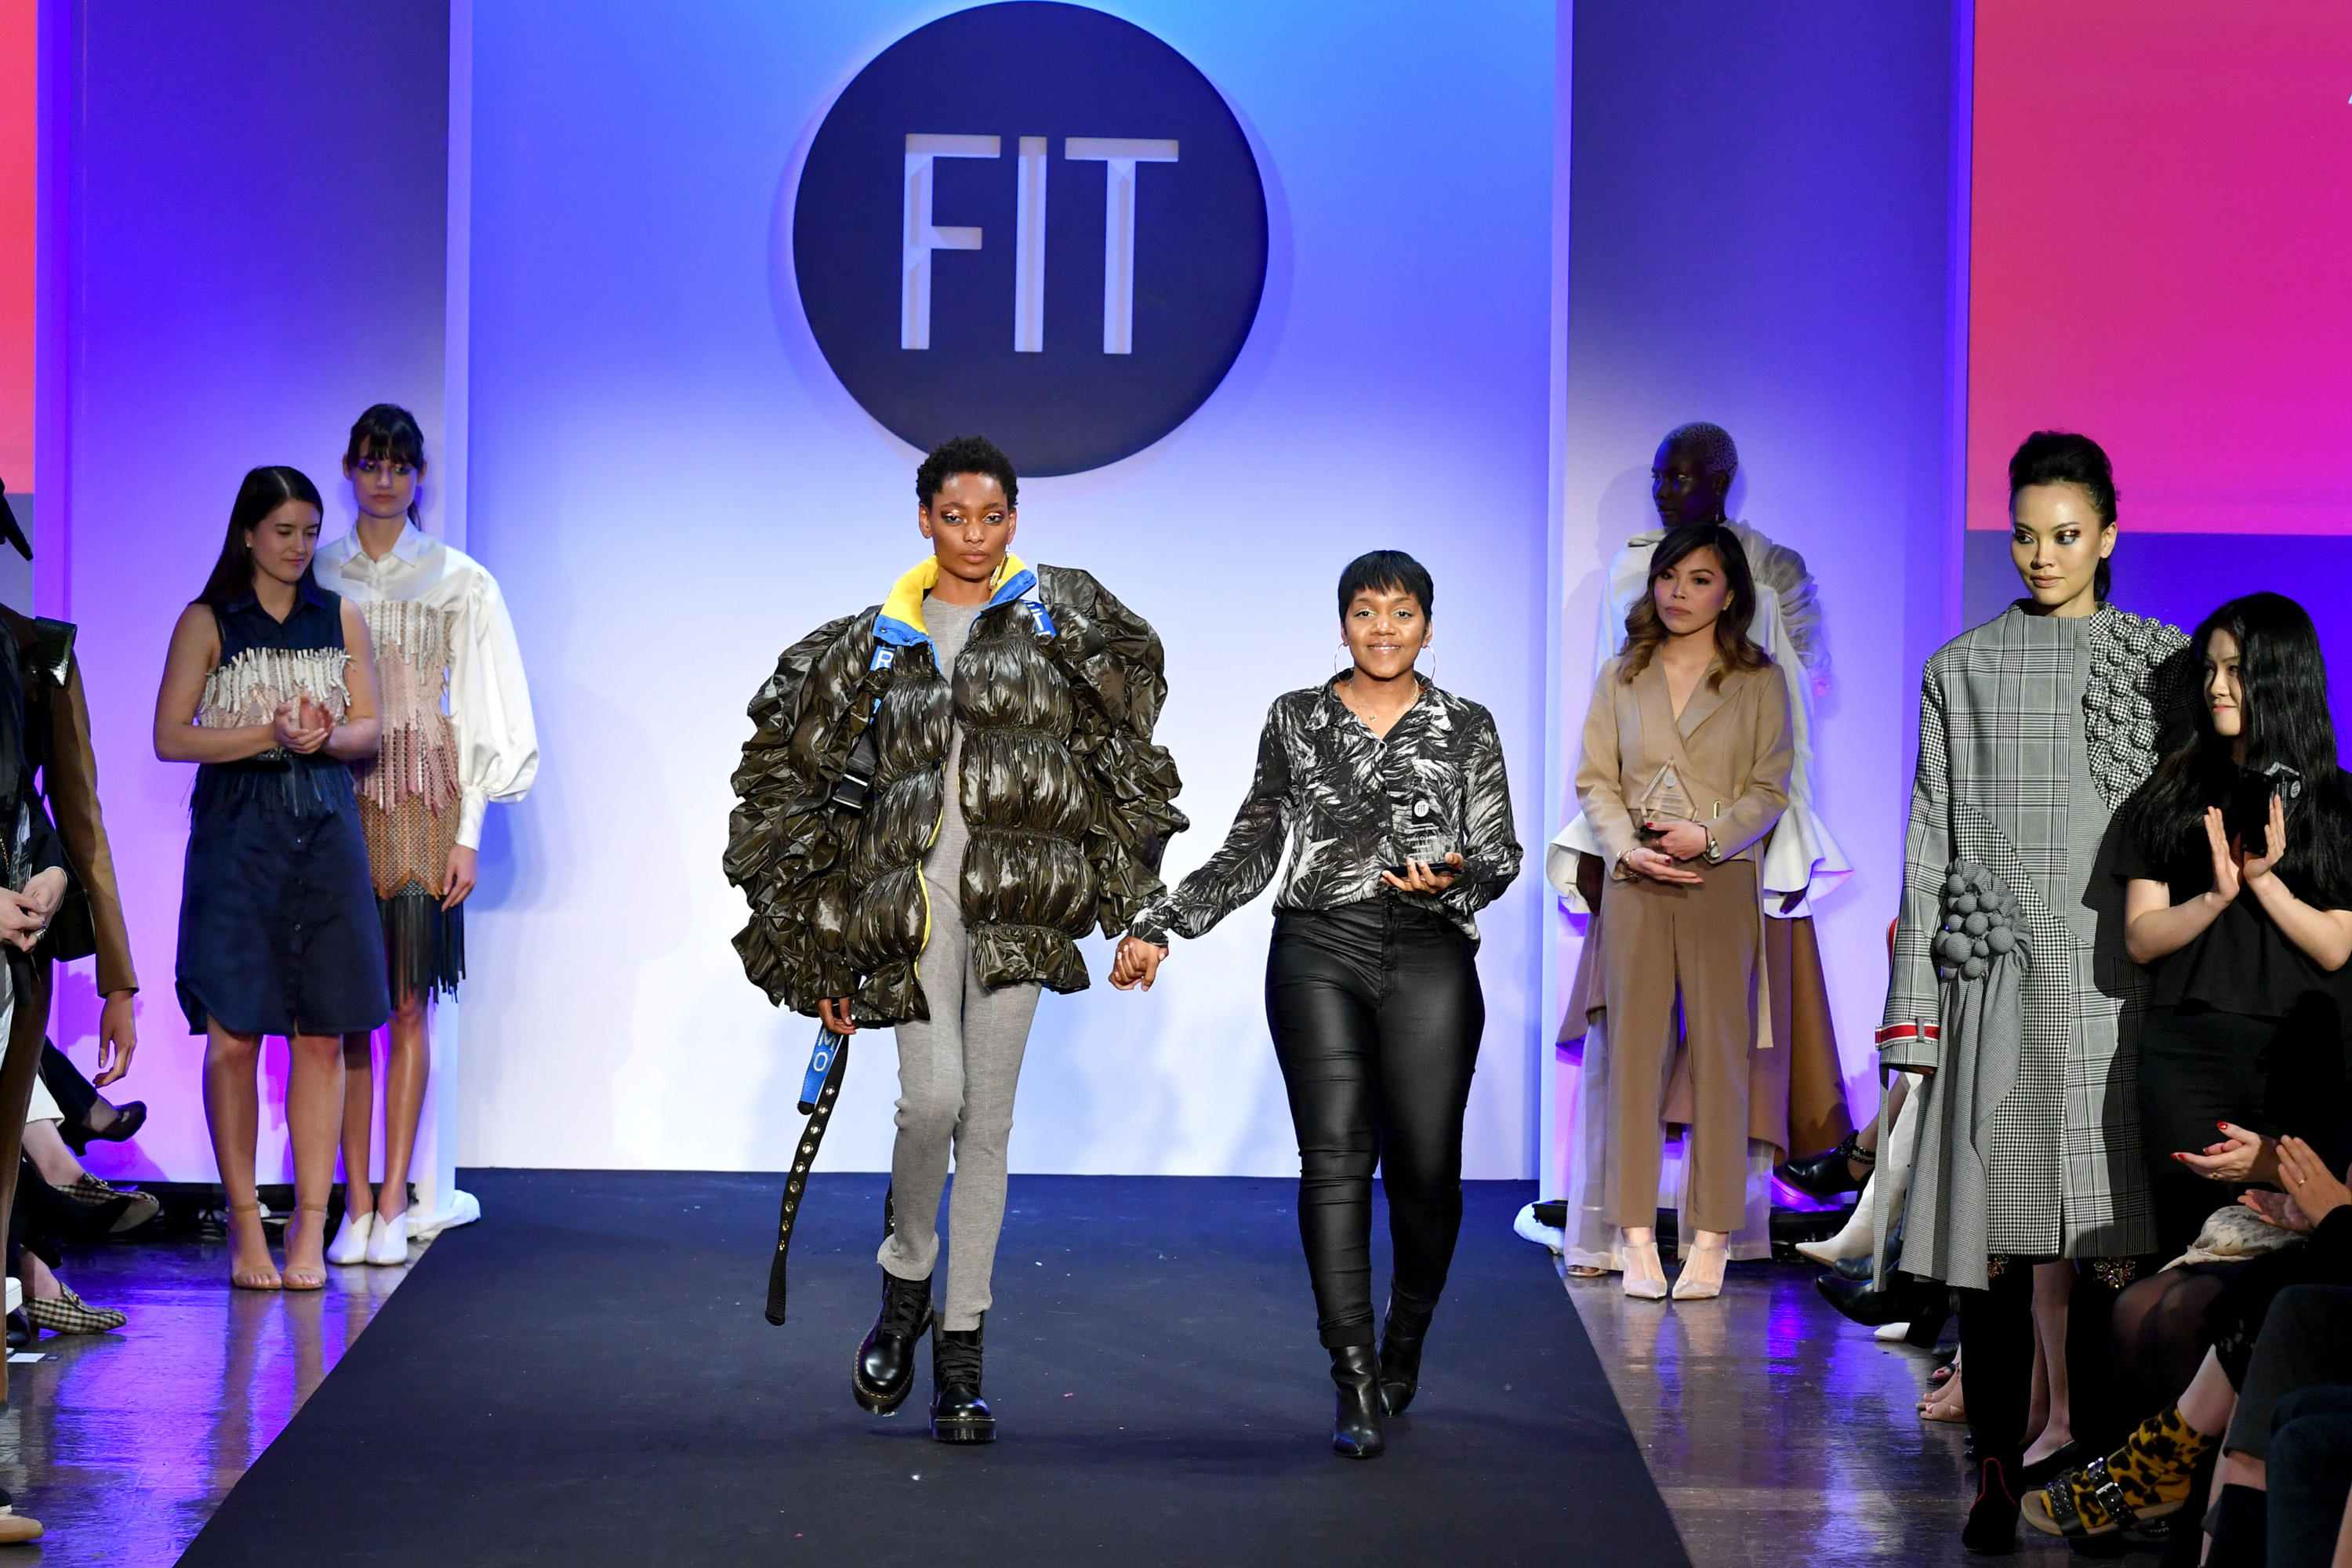 2019 Future Of Fashion Runway Show At The Fashion Institute Of Technology Fashion Mannuscript